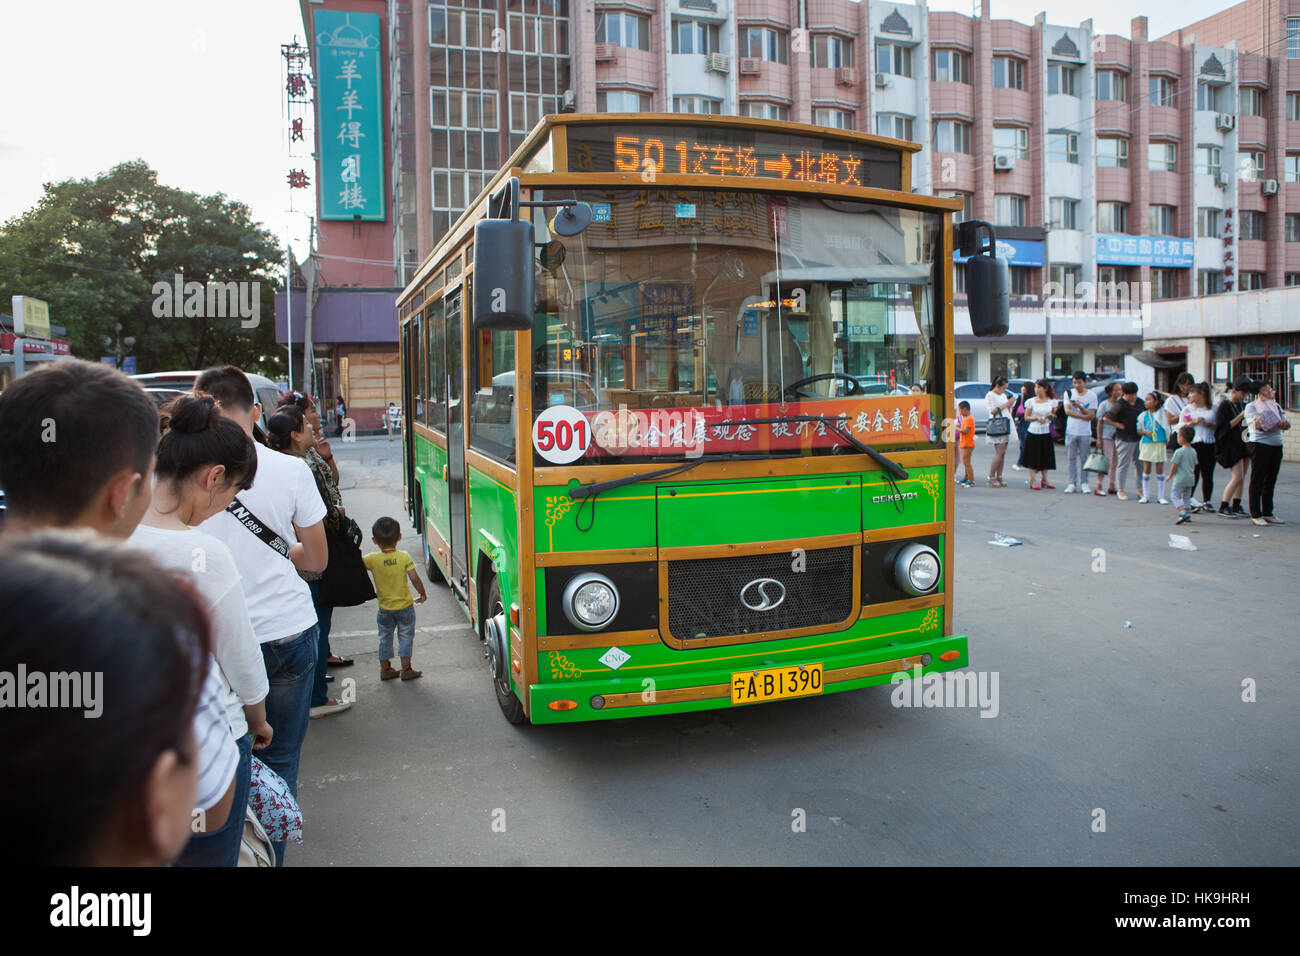 People wiating to get onto the typical urban bus. Yinchuan, Ningxia, China Stock Photo